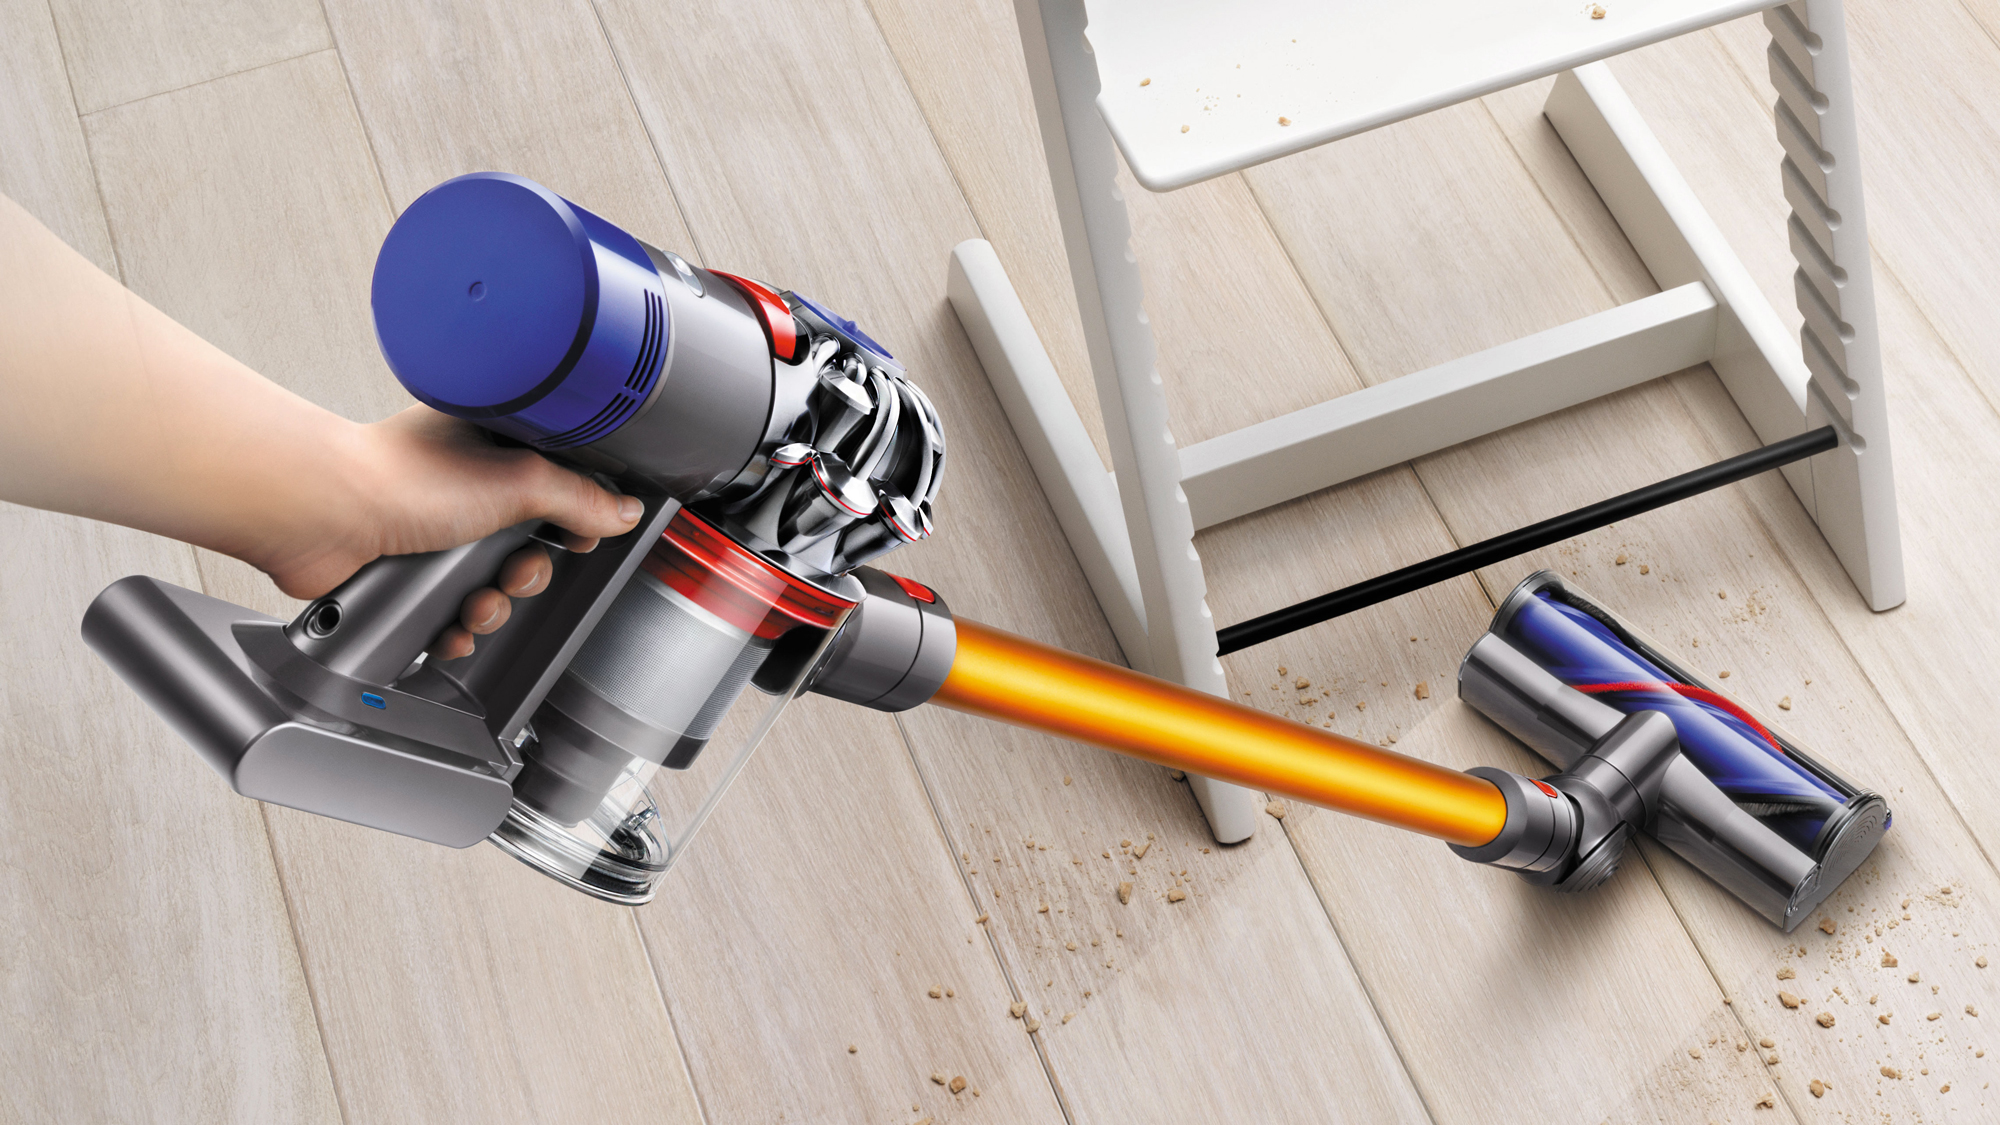 dyson v8 absolute cordless vacuum cleaner review littlestuff. Black Bedroom Furniture Sets. Home Design Ideas